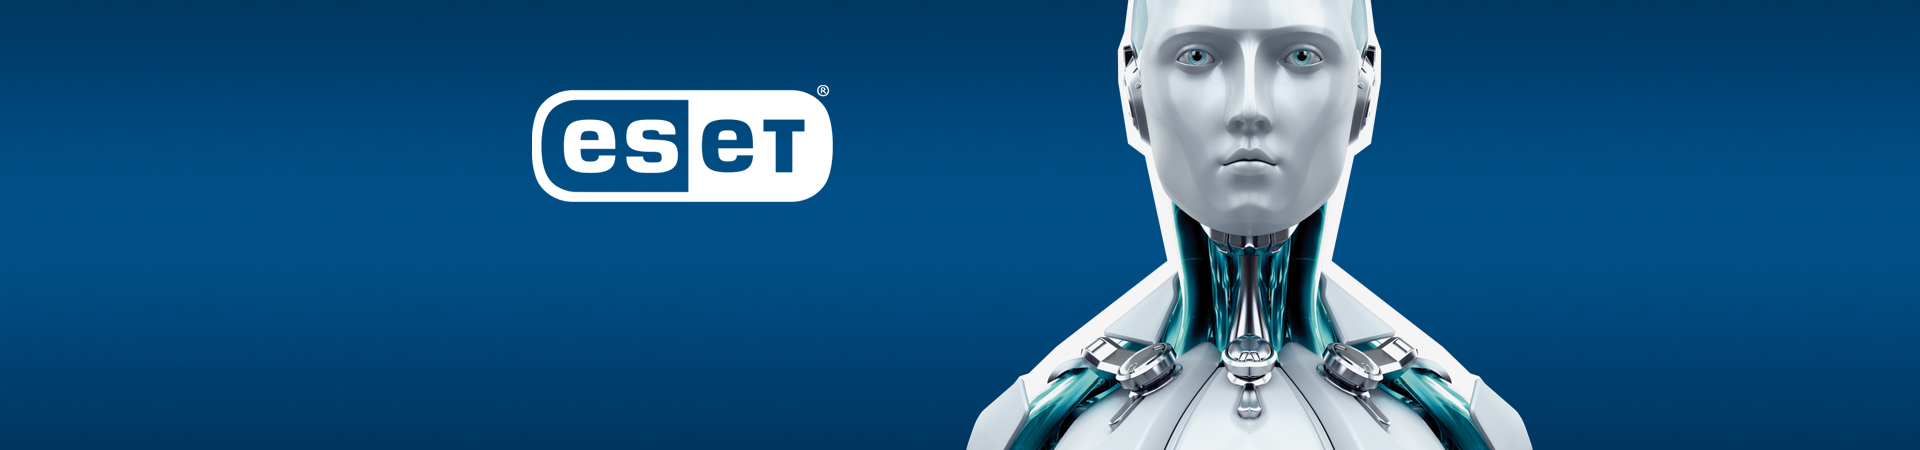 ESET Antivirus, IT Security, Endpoint Protection solutions - AIS